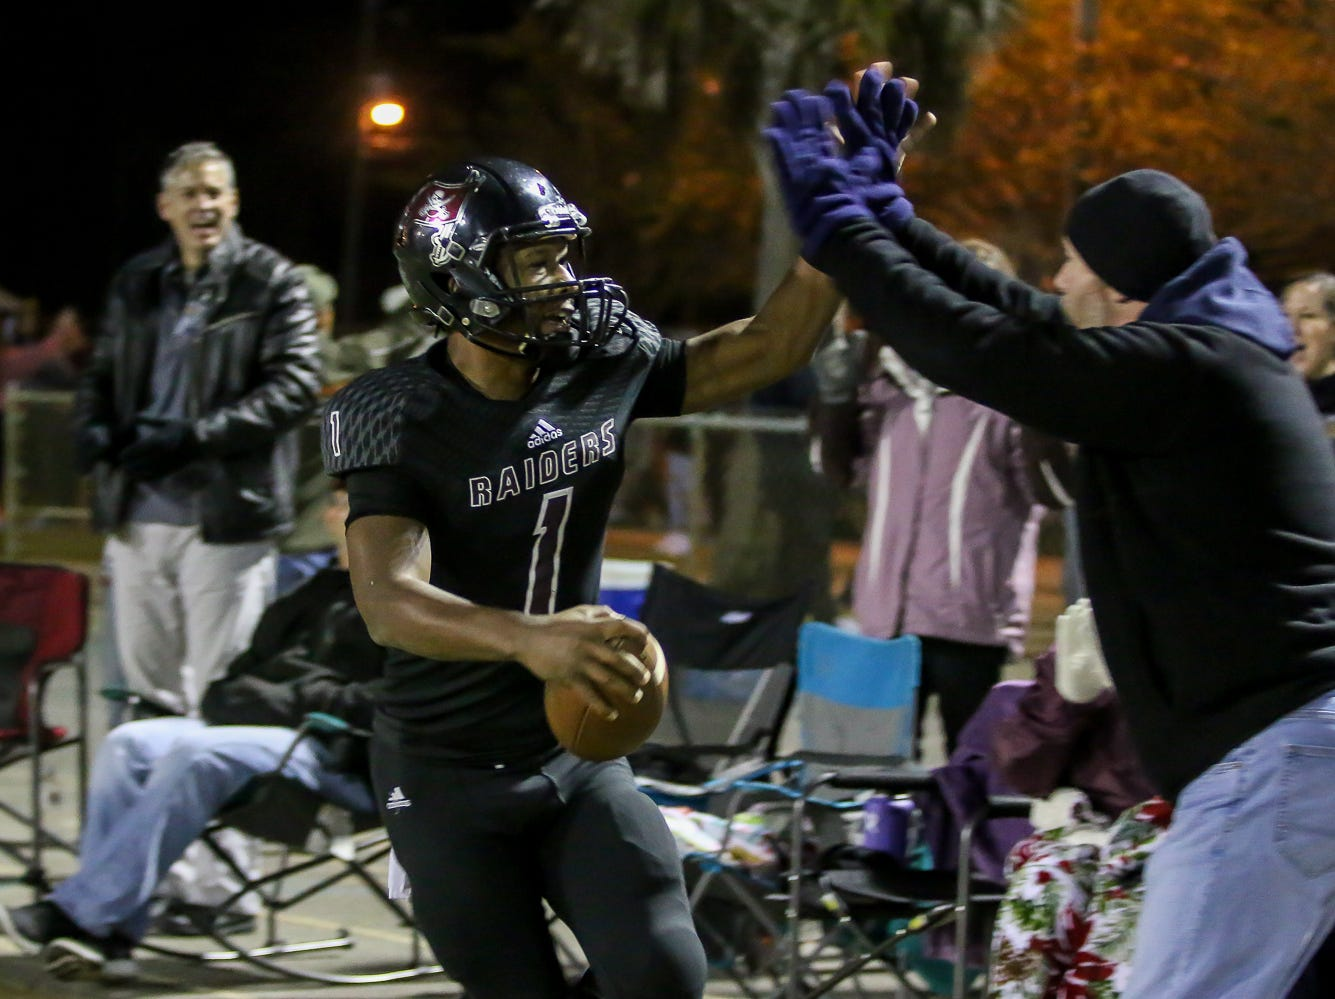 Navarre quarterback Marlon Courtney III (1) celebrates after a 15-yard touchdown run on the Raiders' first play against Escambia in the Region 1-6A Semifinal game at Navarre High School on Friday, November 16, 2018.